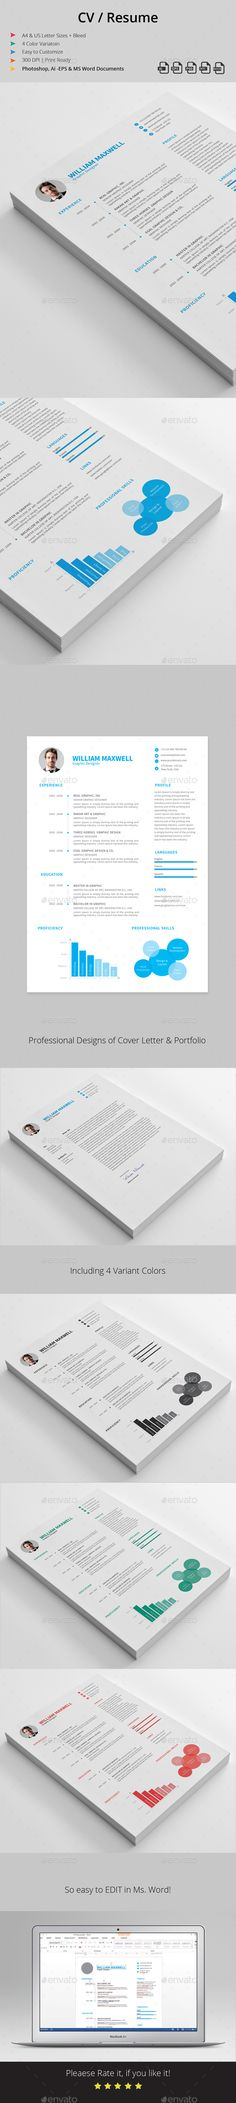 Resume Resume cv, Cv template and Curriculum - resume form download